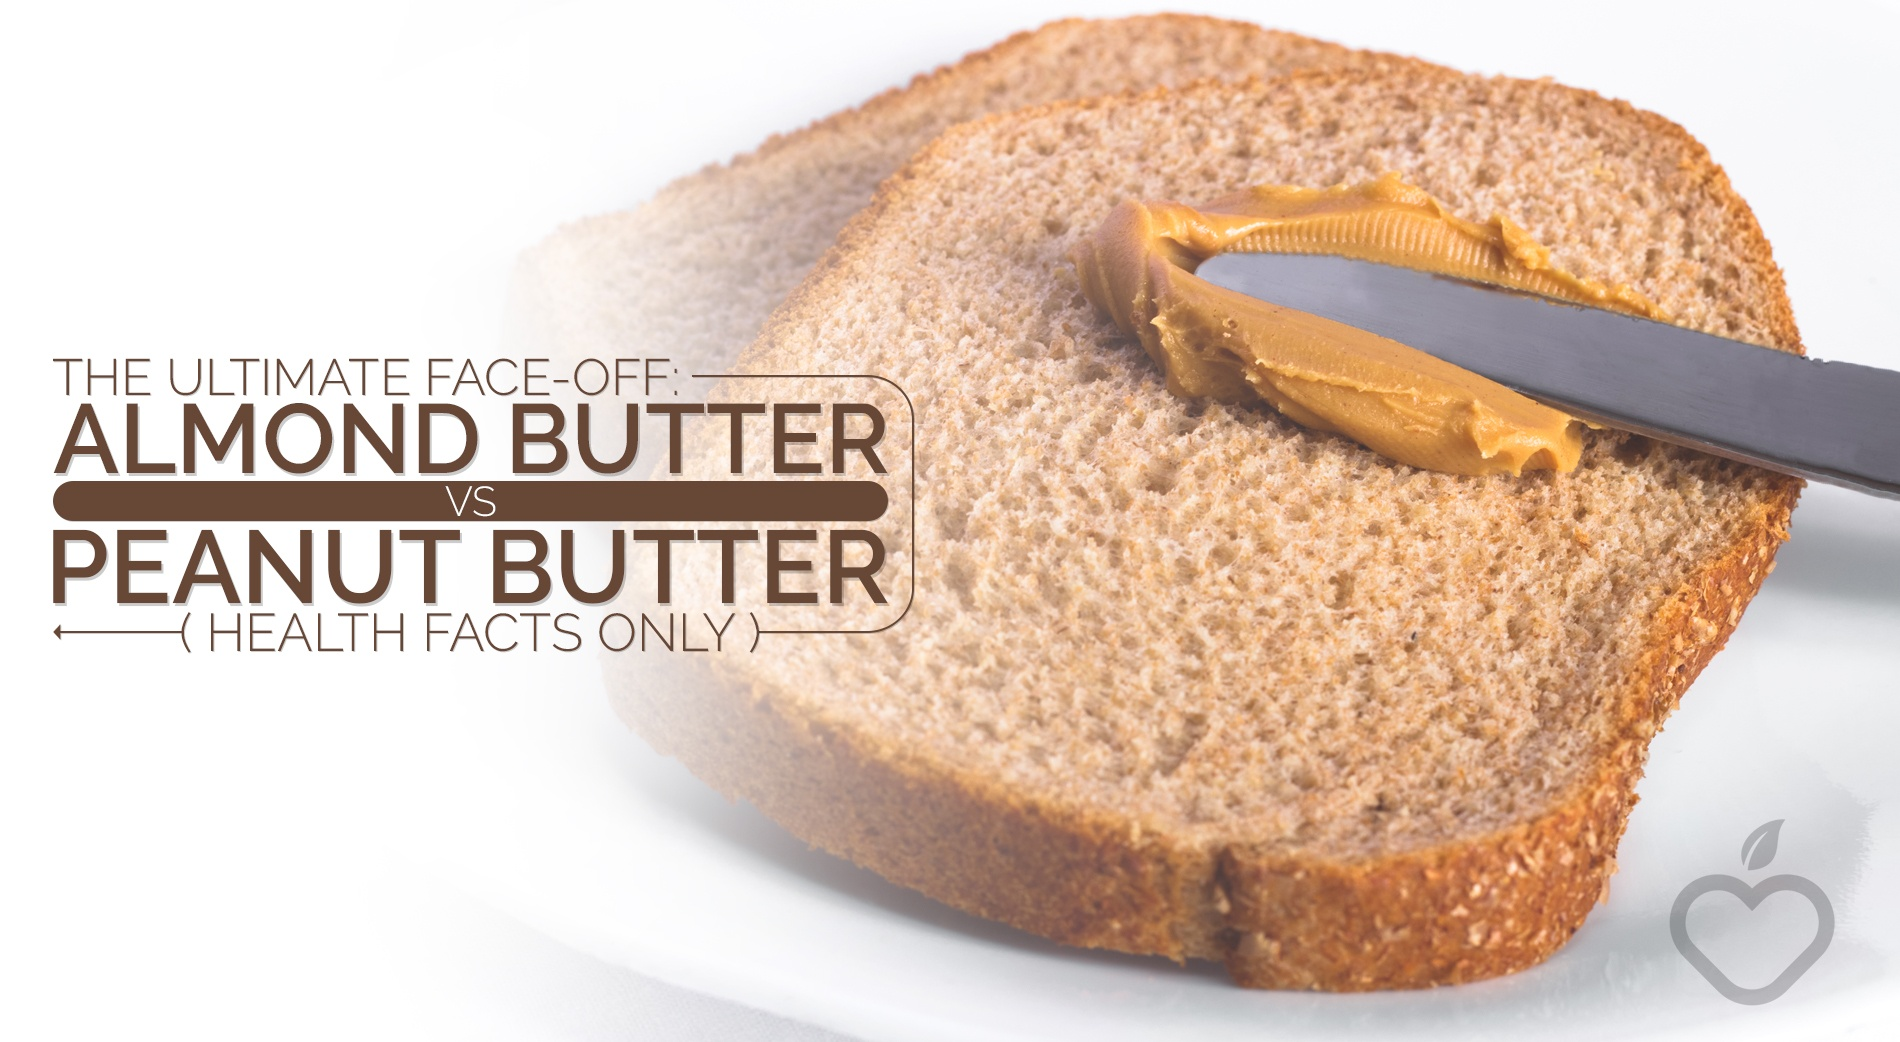 Almond Butter Image Design 1 - The Ultimate Face-Off: Almond Butter Vs Peanut Butter (Health Facts Only)